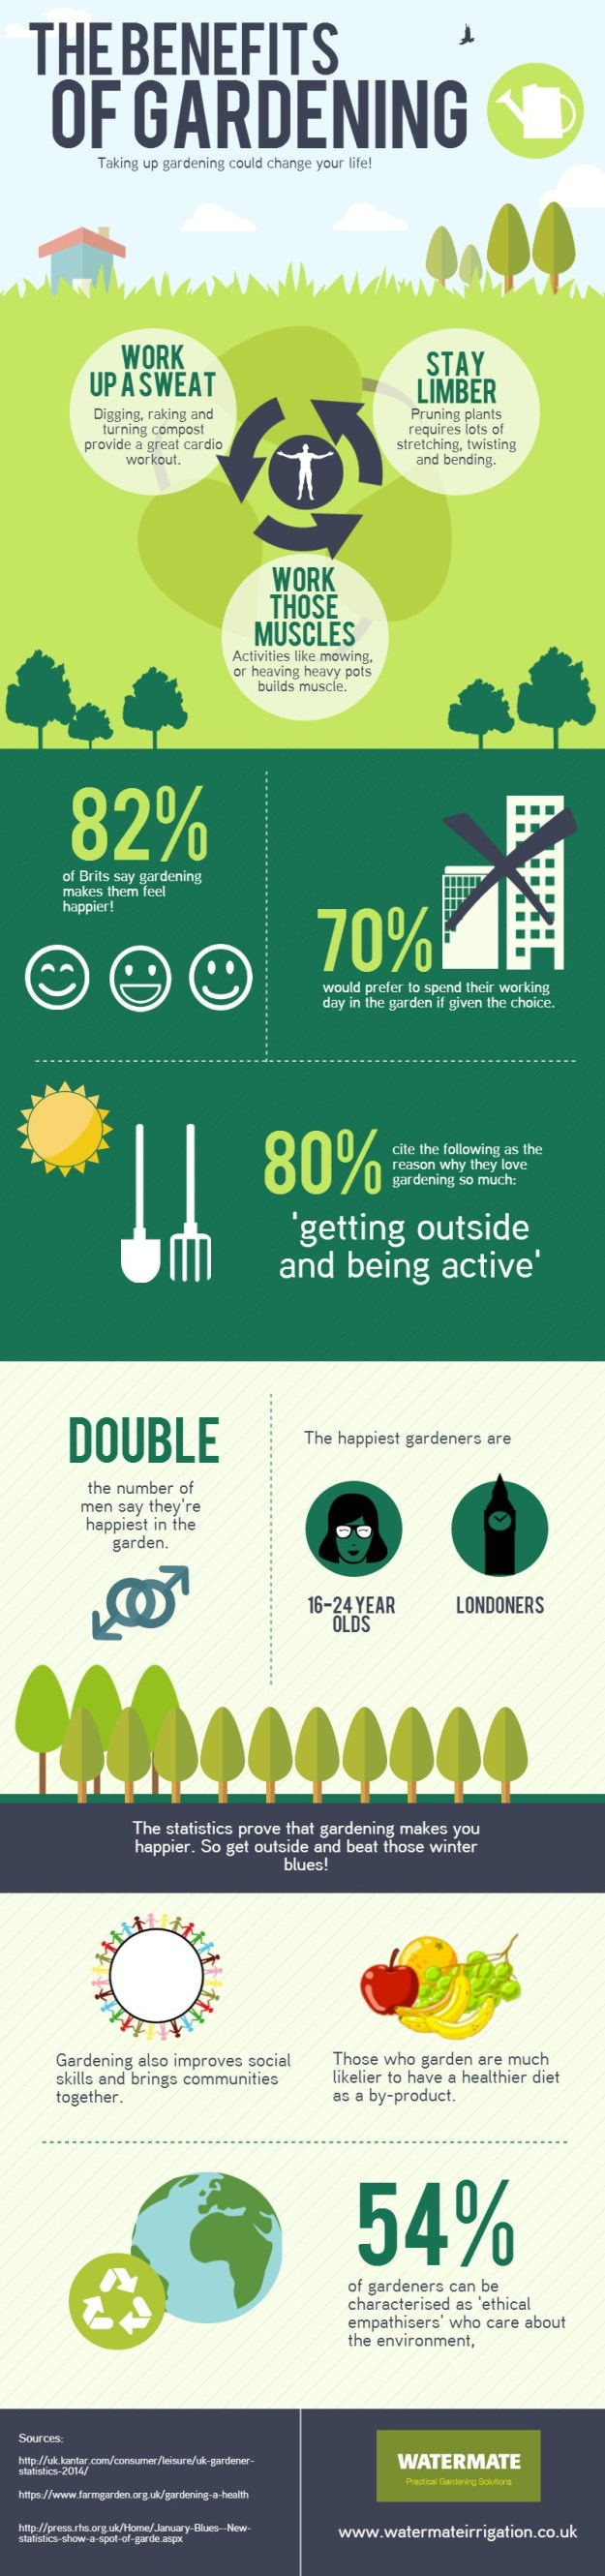 Infographic | Winter Gardening Tips: The Prepper's Guide to Cold-Weather Gardening | gardening in winter months